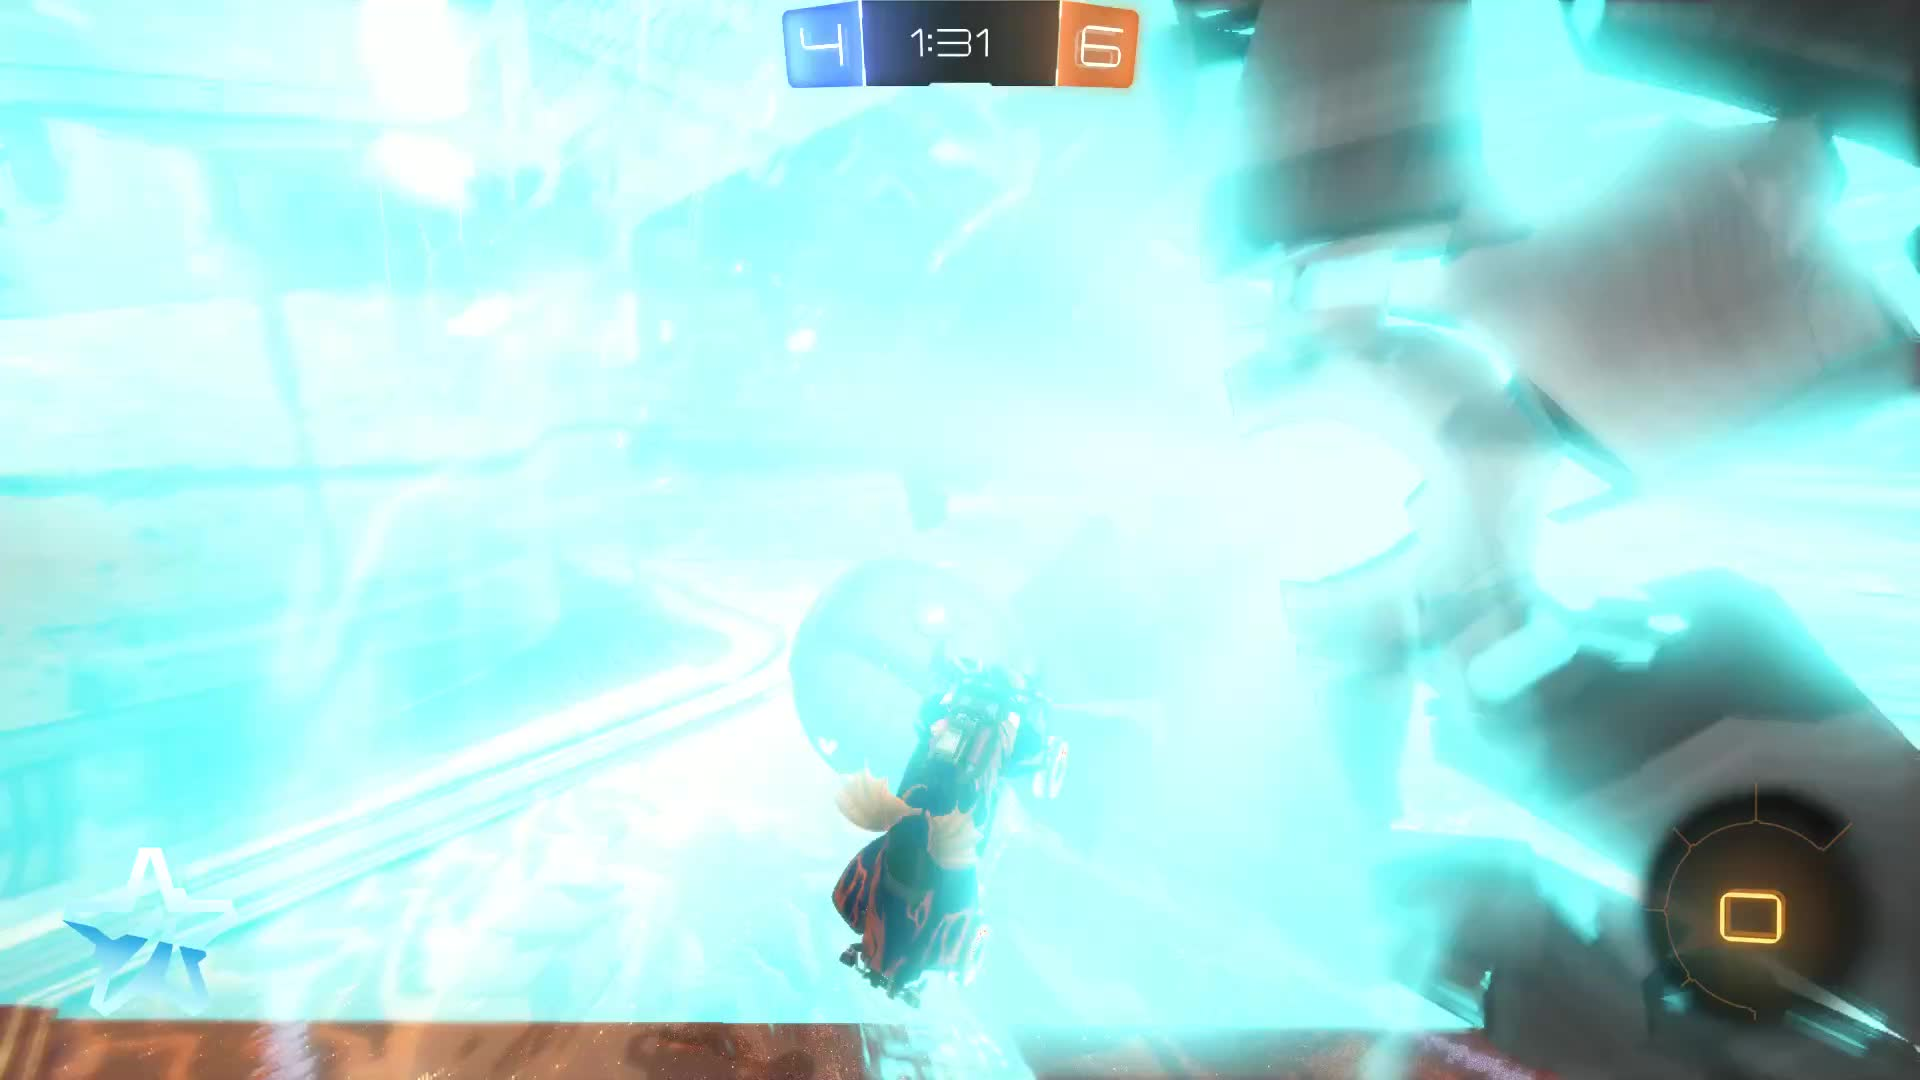 Gif Your Game, GifYourGame, Goal, ItIsK3vin, Rocket League, RocketLeague, Goal 11: ItIsK3vin GIFs